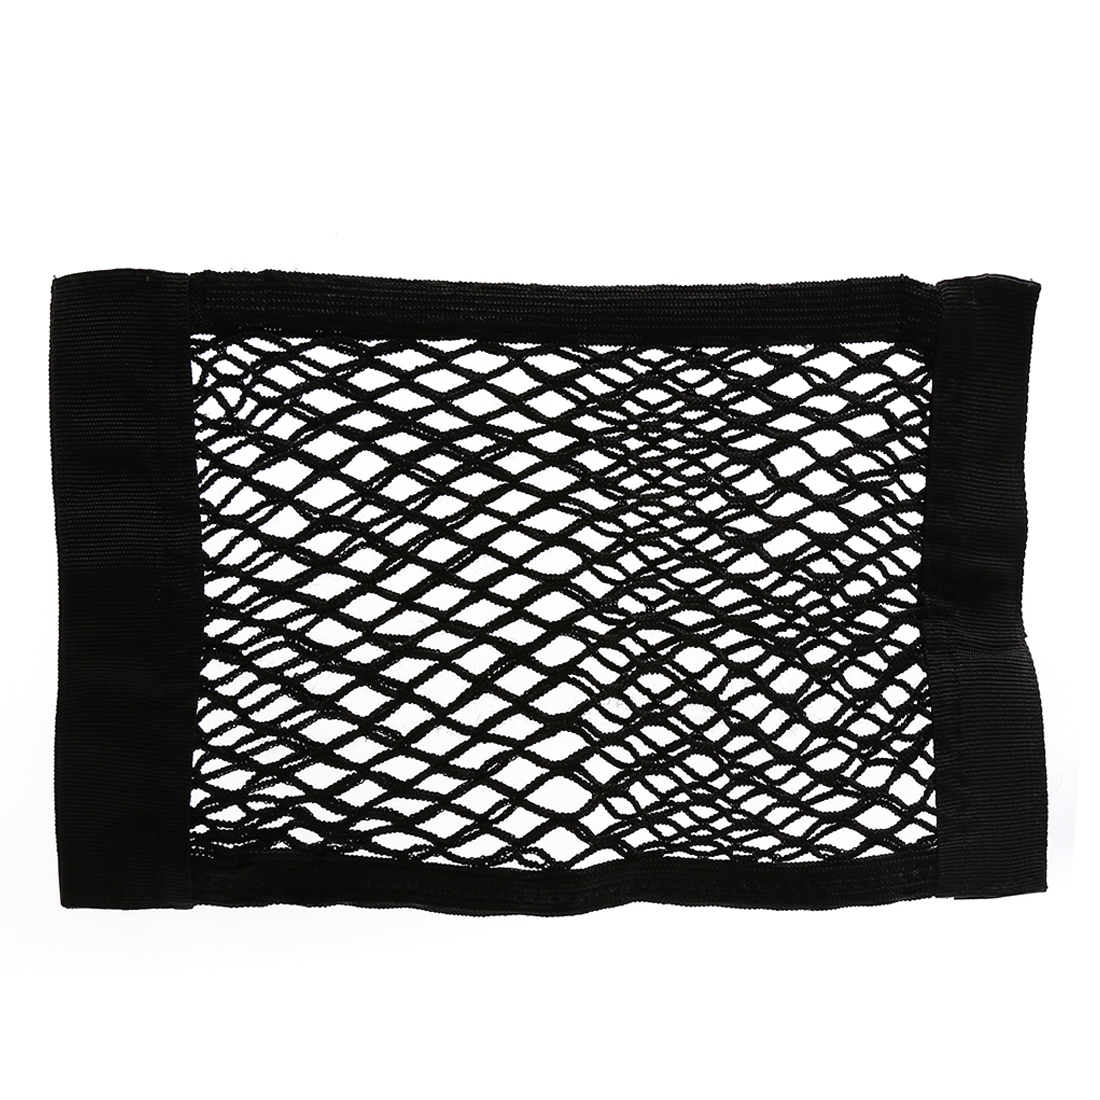 40cm x 25cm Auto Car Rear Seat Back Elastic String Mesh Storage Net Pocket